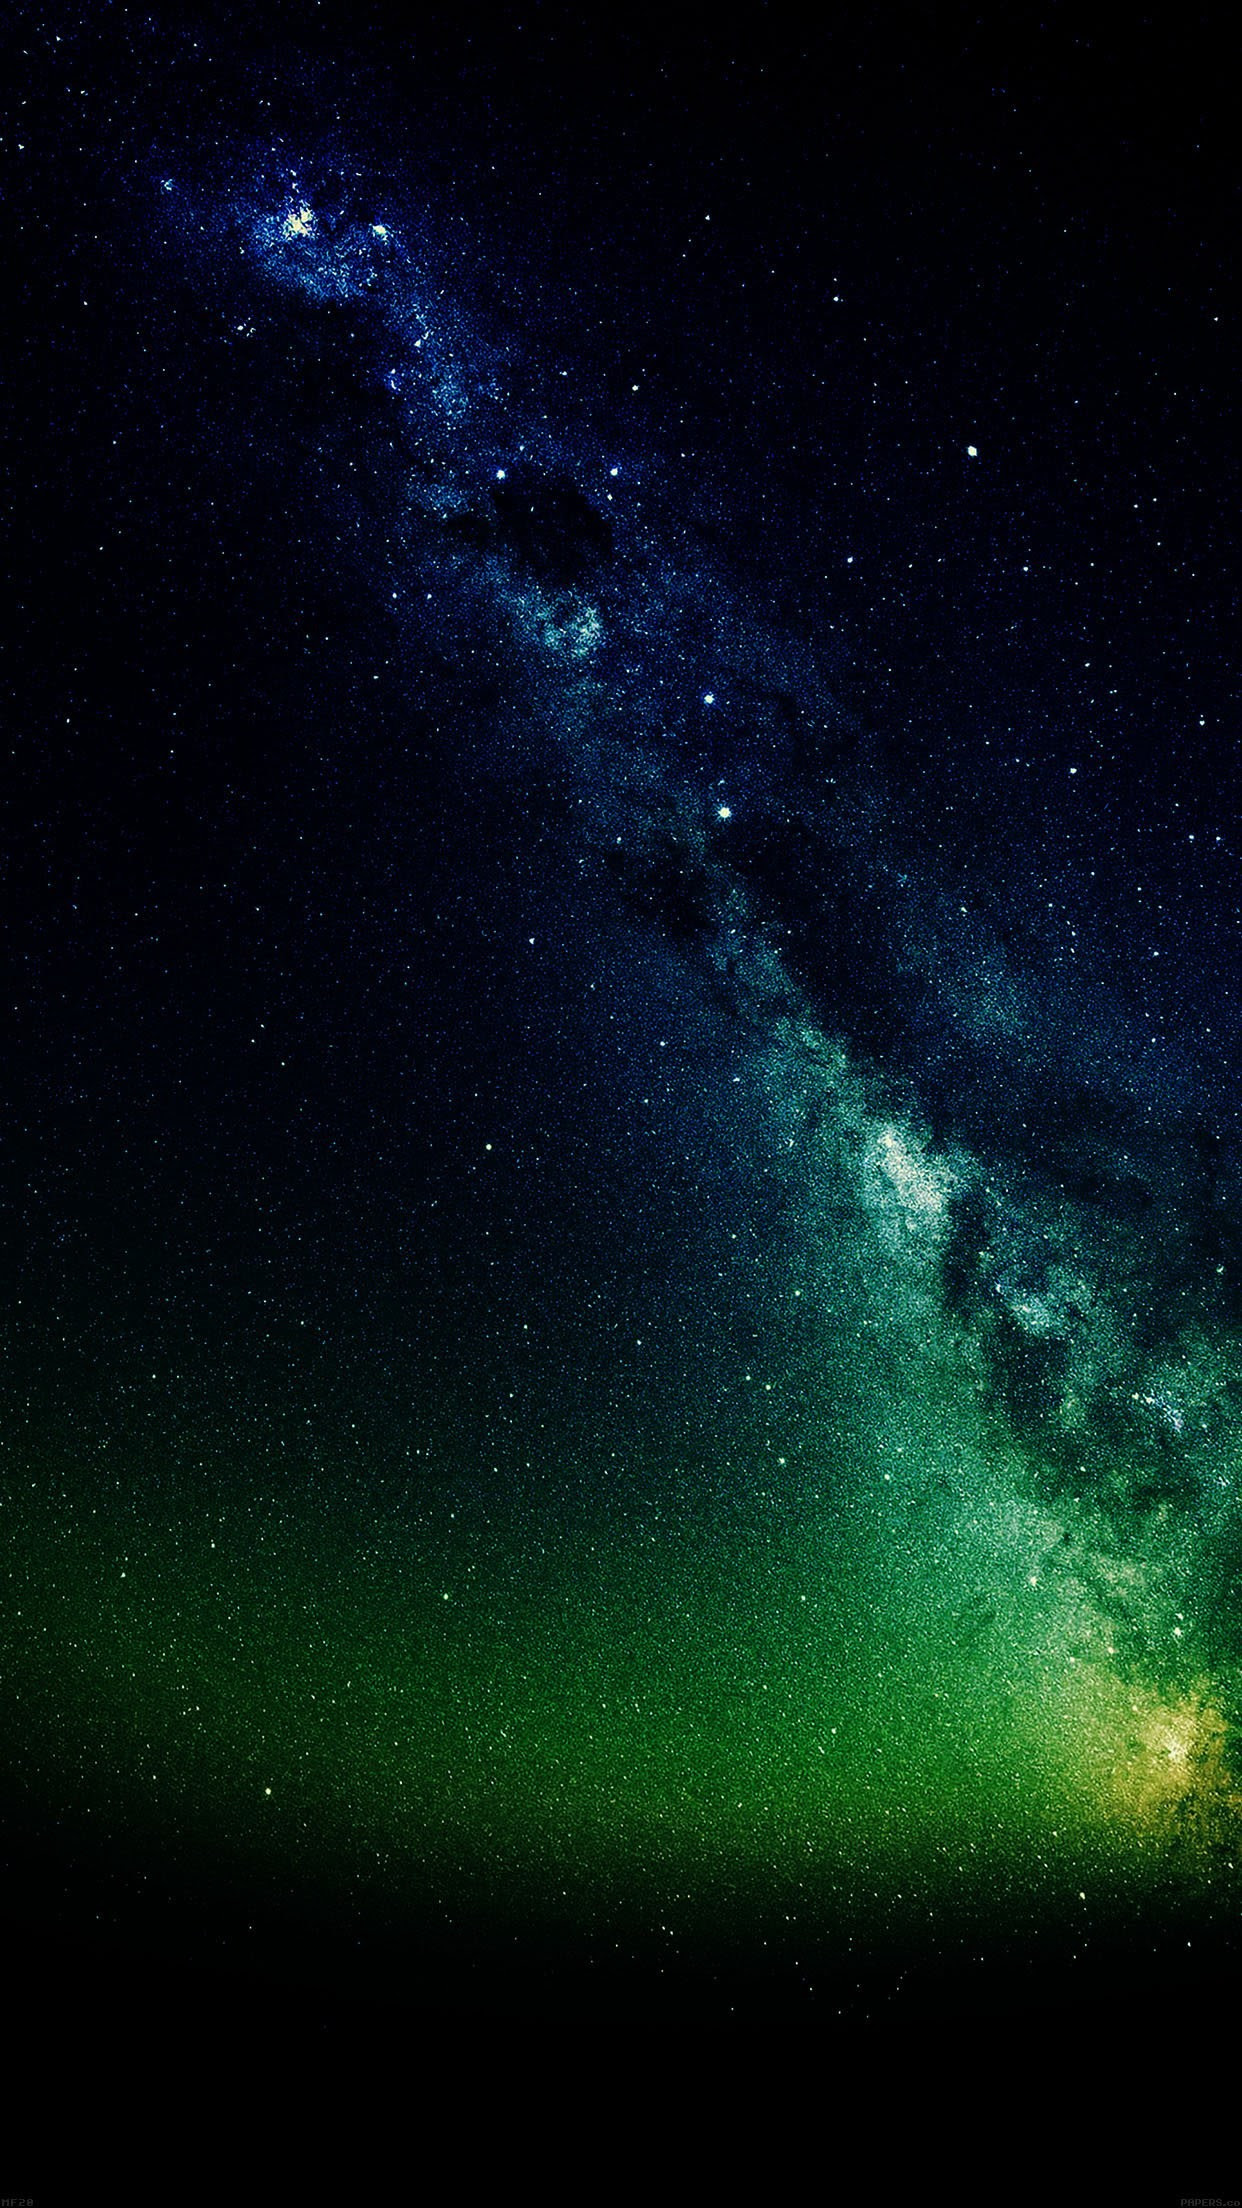 Aesthetic Space Wallpapers Iphone Largest Wallpaper Portal